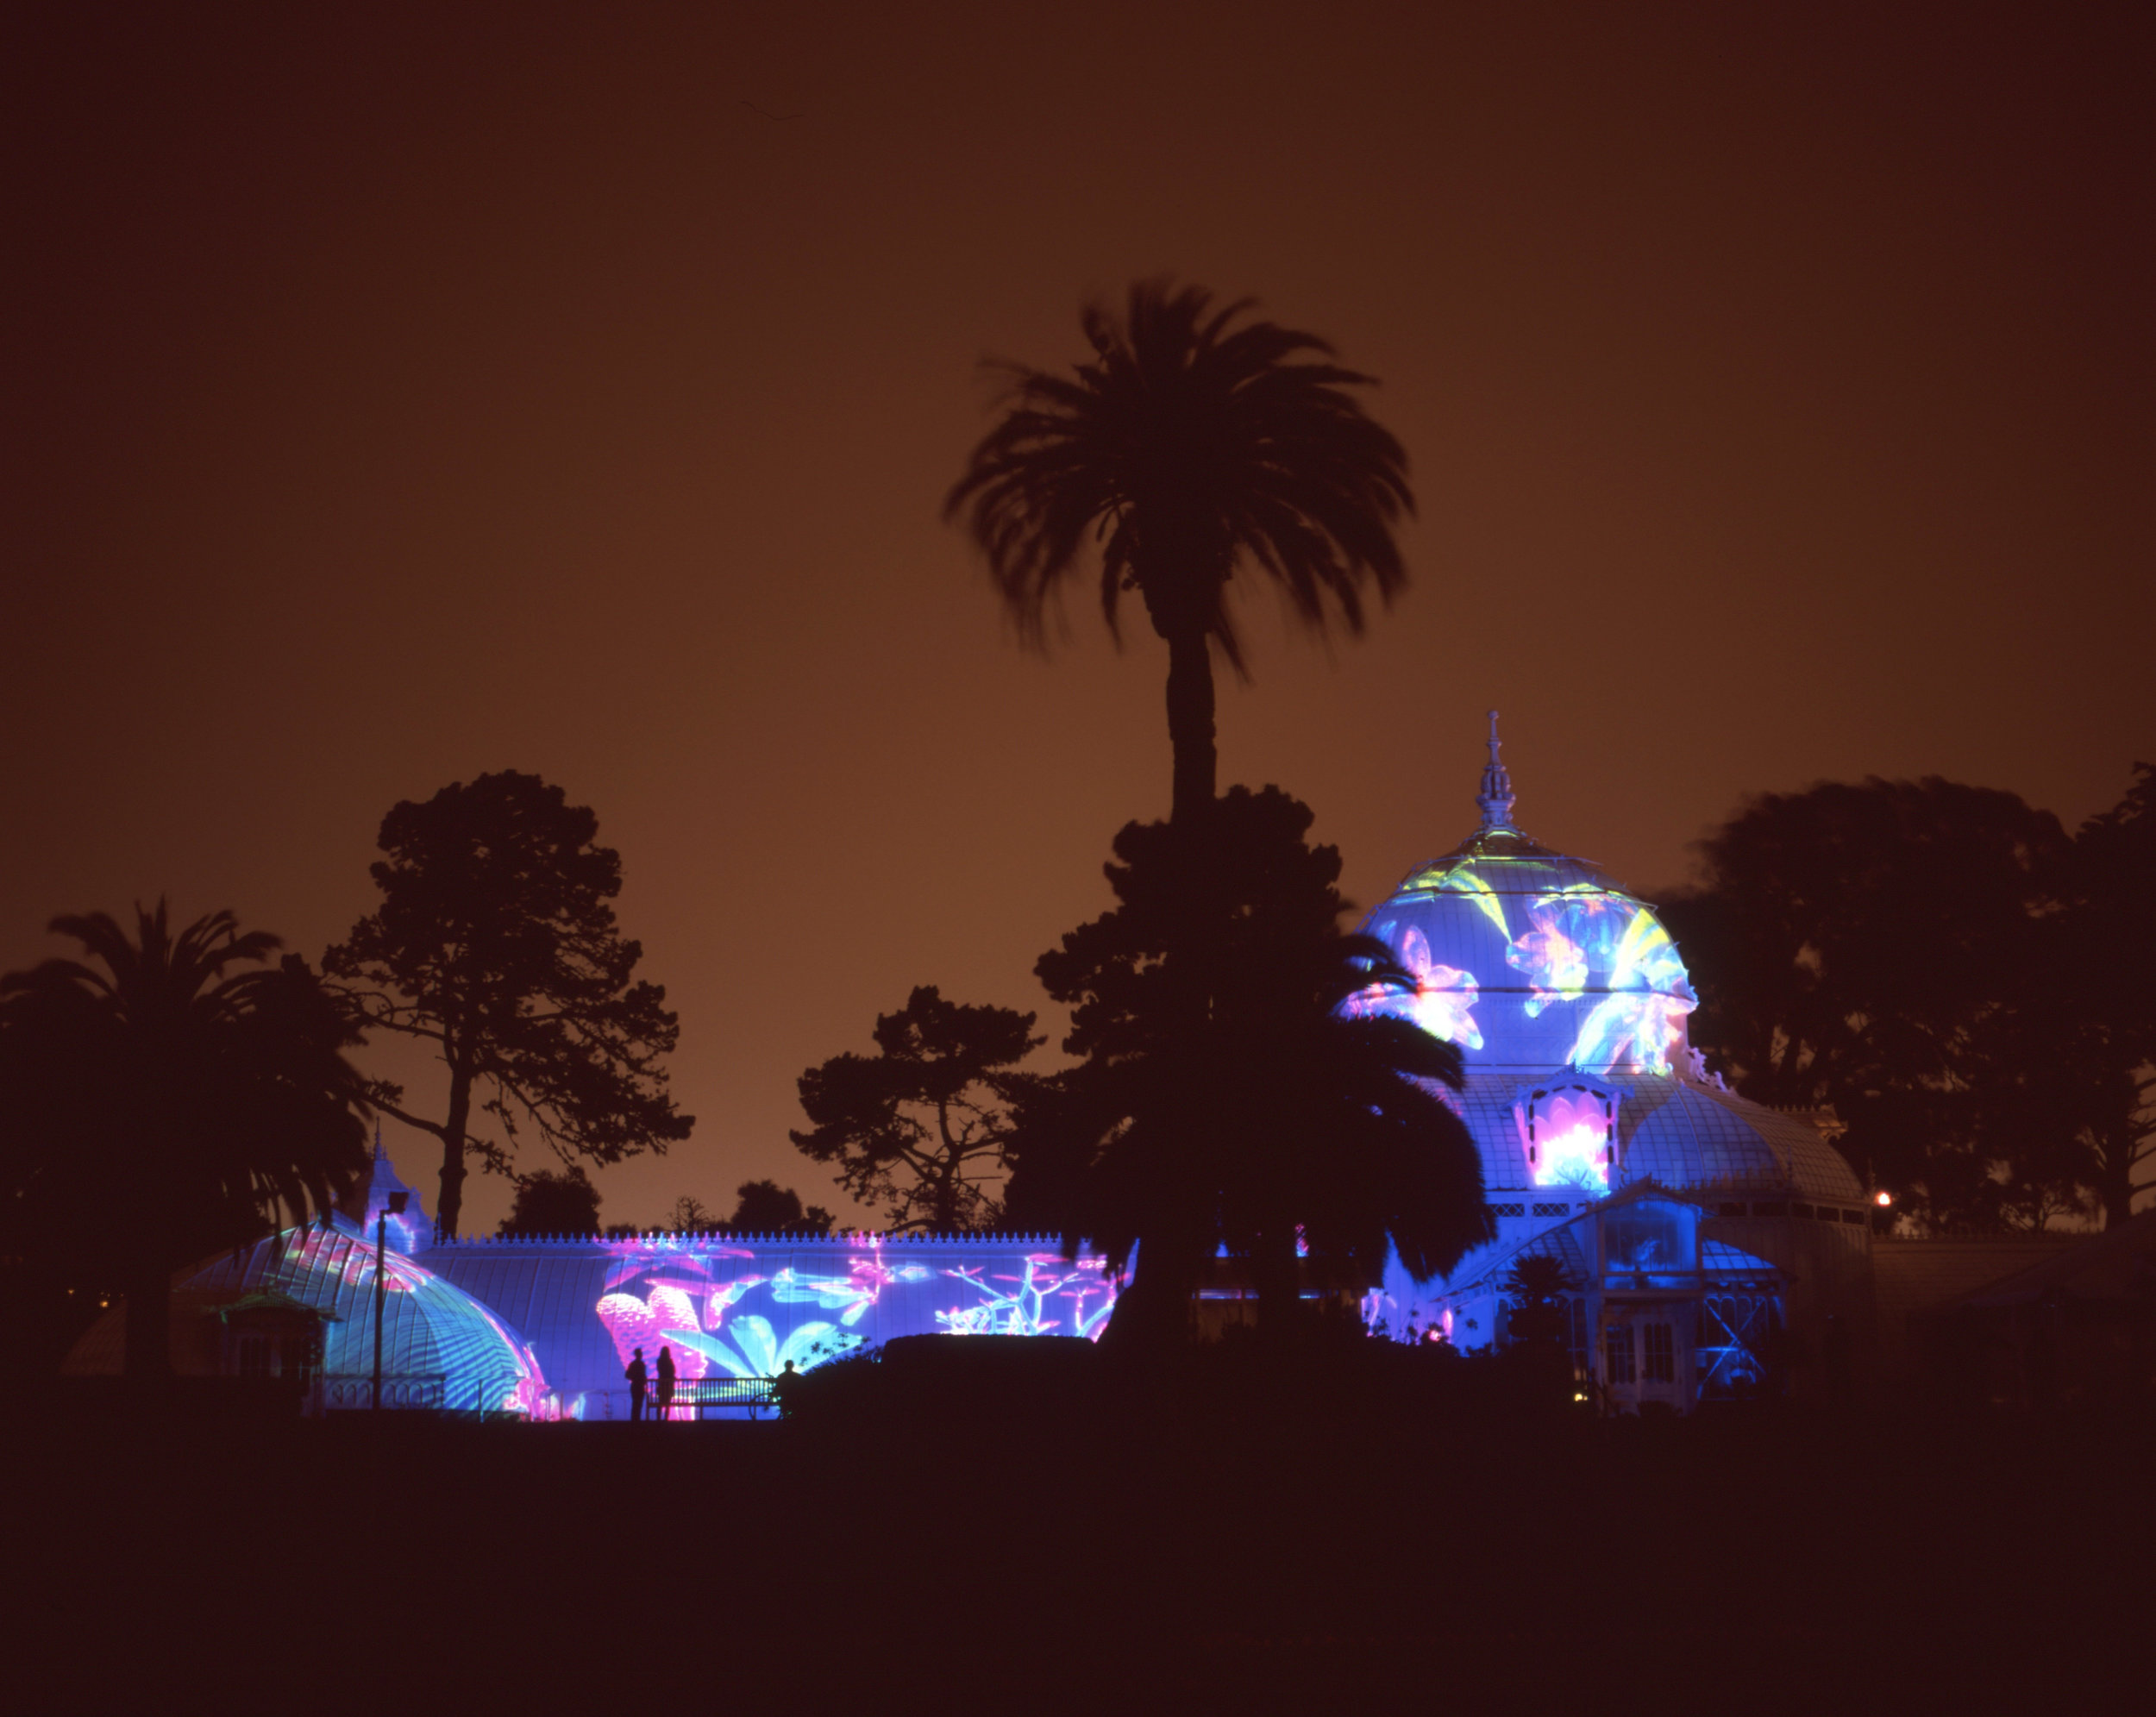 Conservatory of Flowers (Summer of Love)